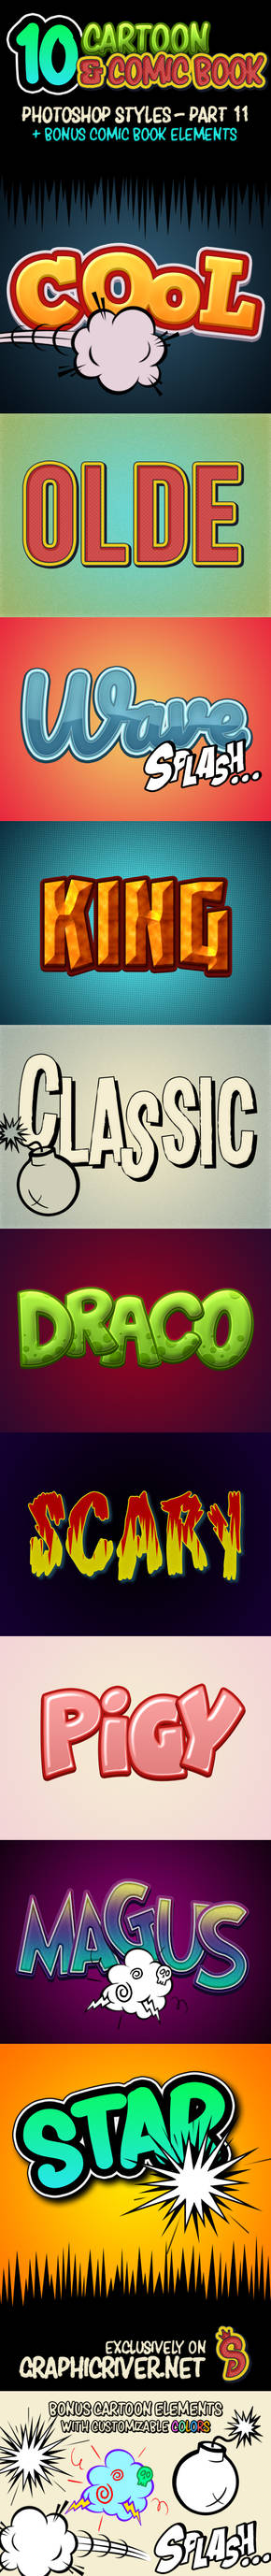 Cartoon and Comic Book Photoshop Styles - PART 11